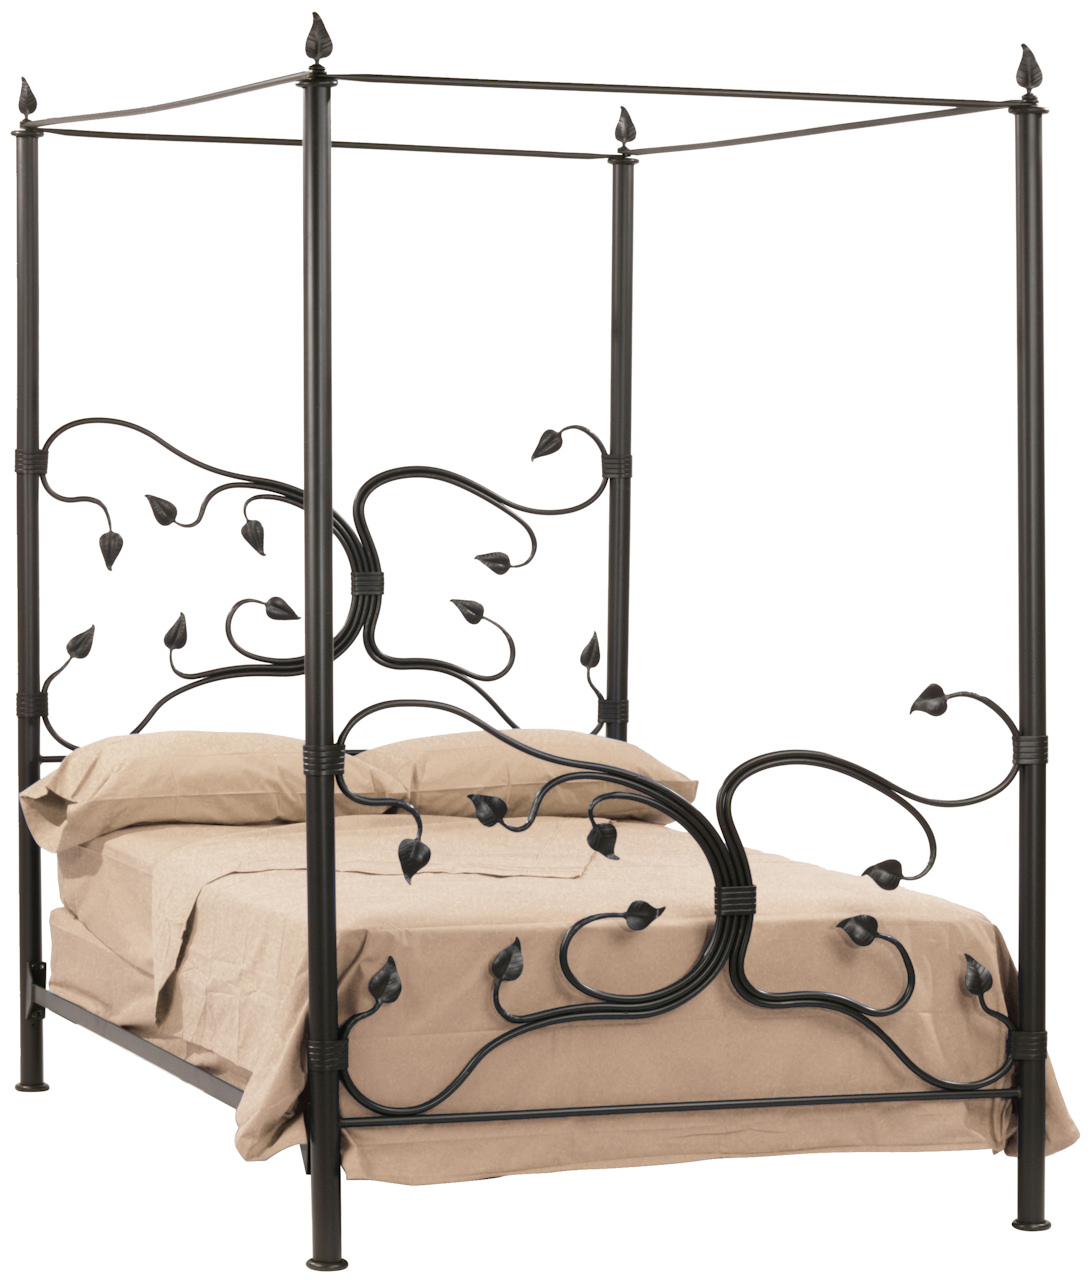 - Queen Wrought Iron Canopy Bed Metal Tree Bed Frame